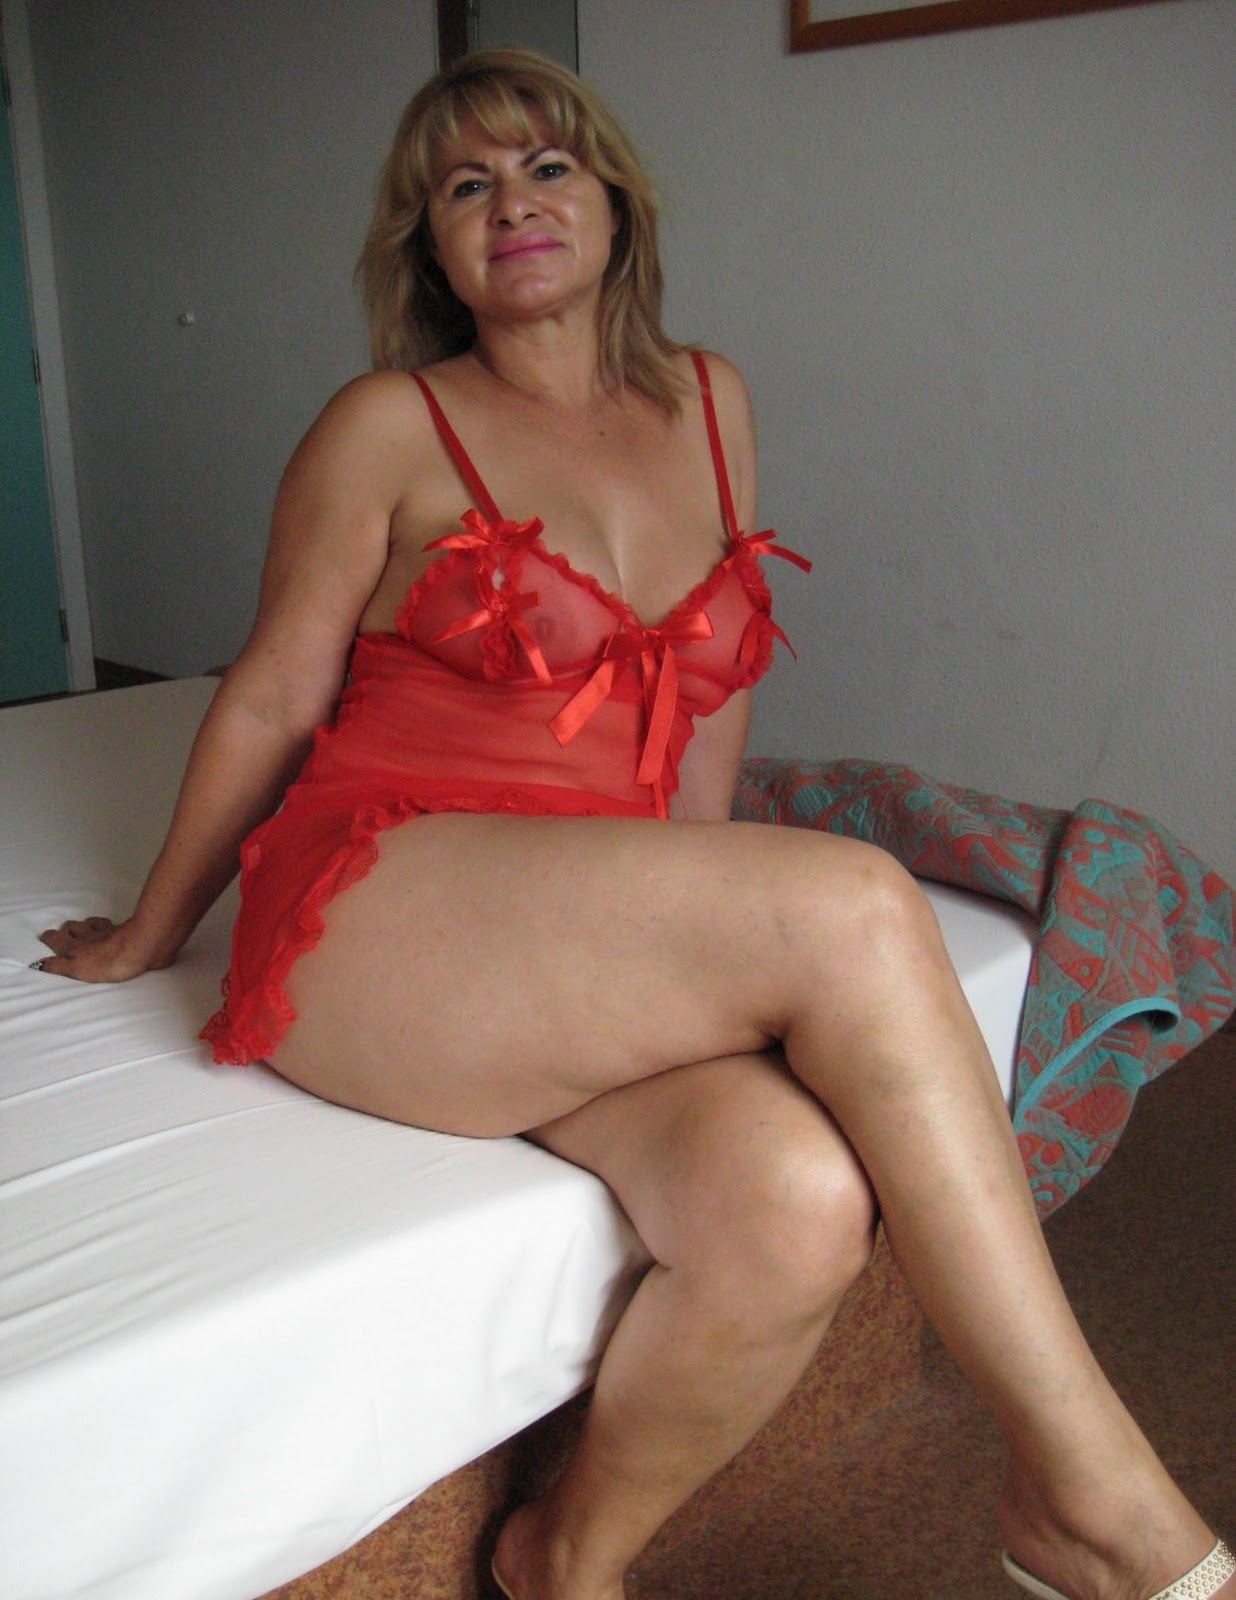 And ver imagenes mujeres infieles desnudas can